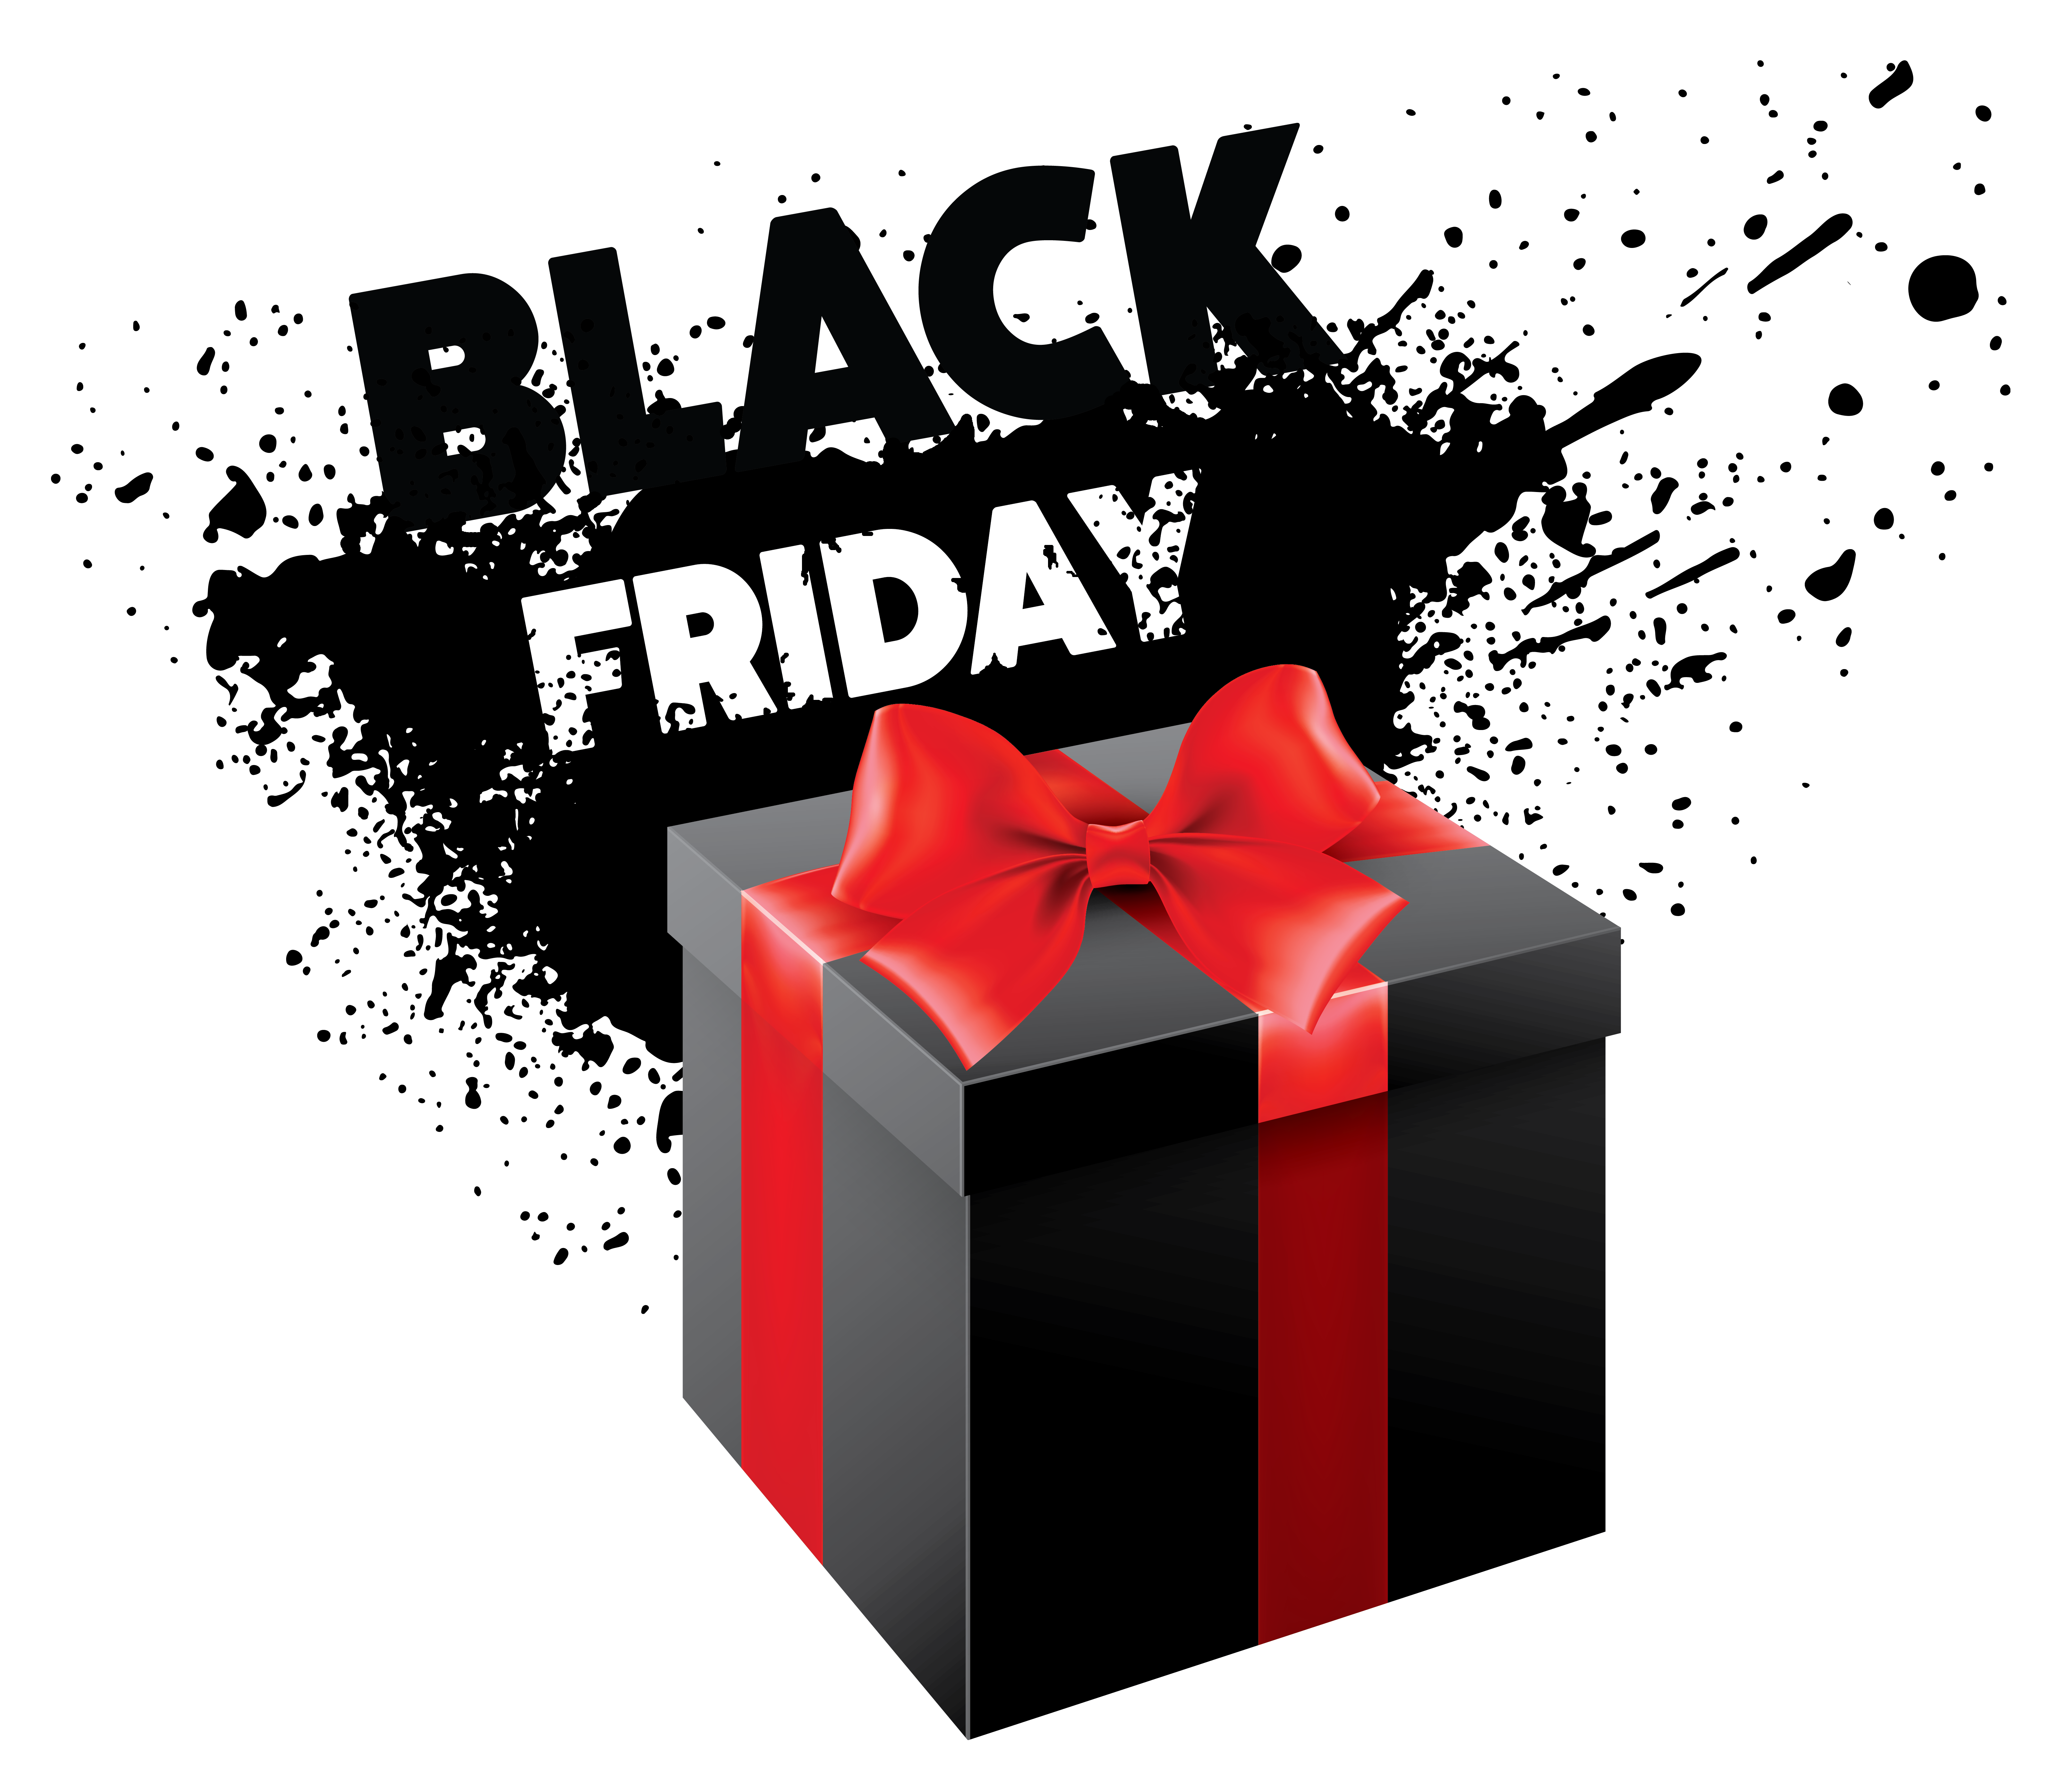 Black Friday Png - View full size ?